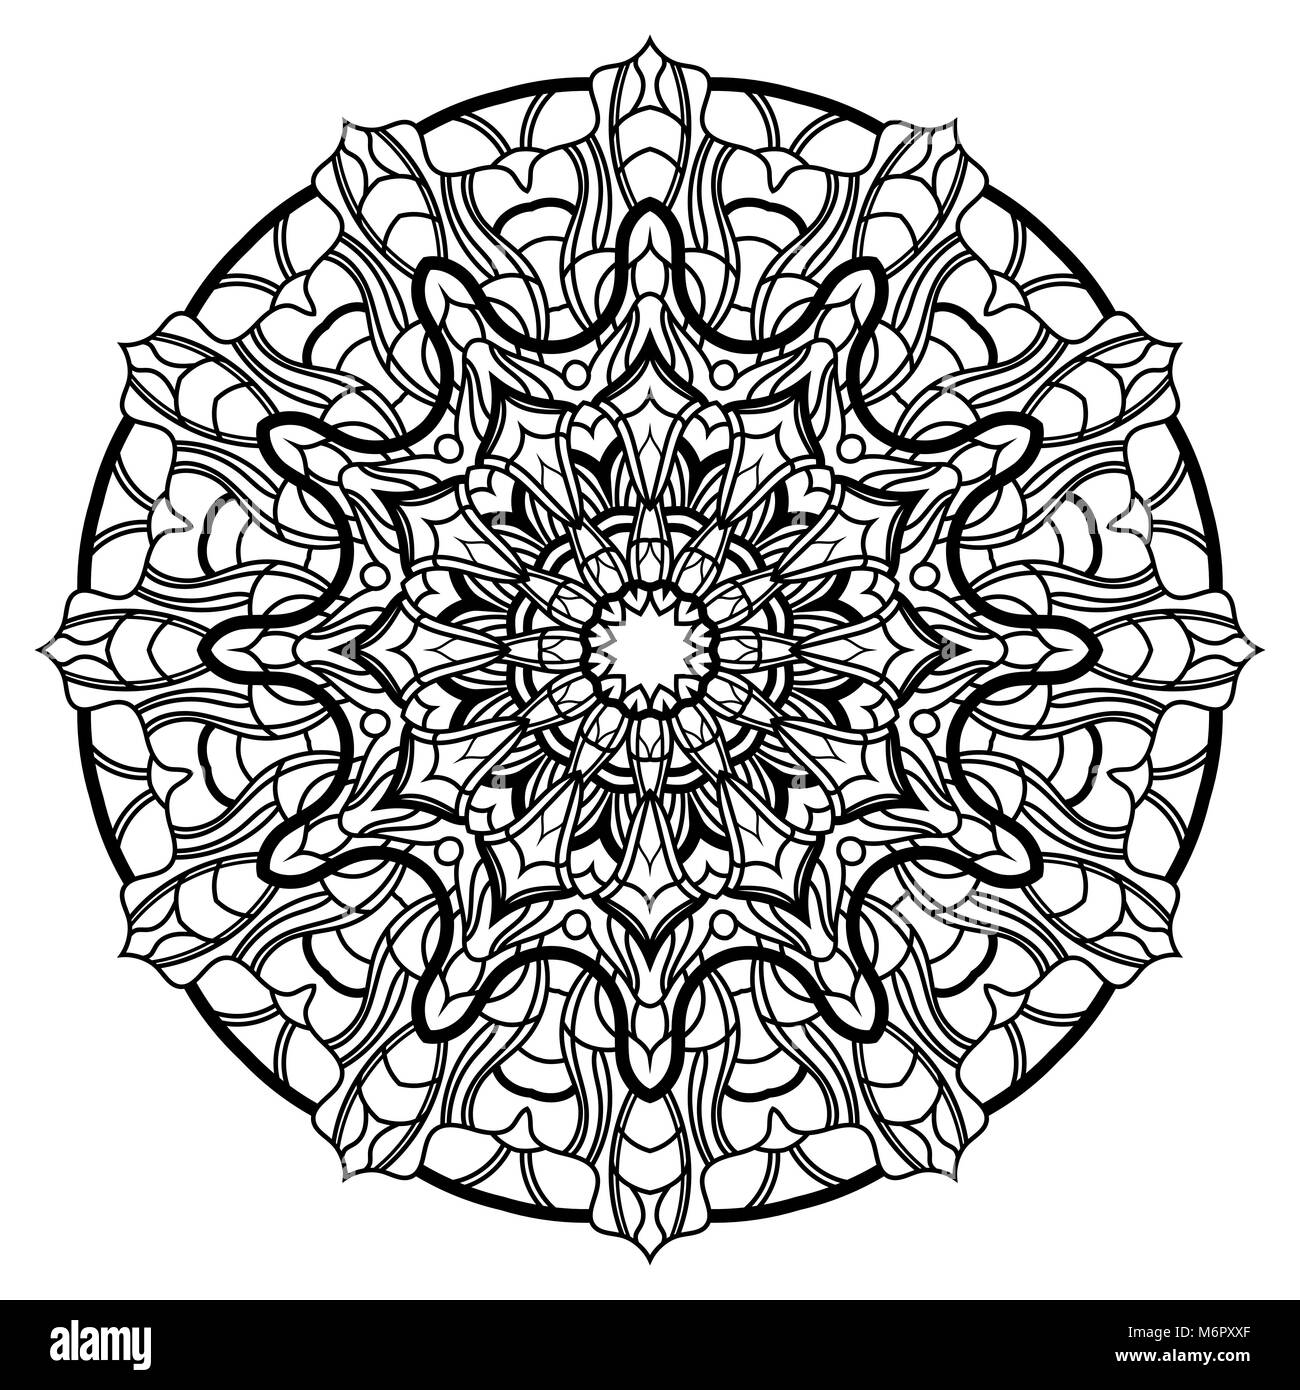 mandalas zum ausmalen dekorative runde verzierungen ungew hnliche blume orientalische vector. Black Bedroom Furniture Sets. Home Design Ideas